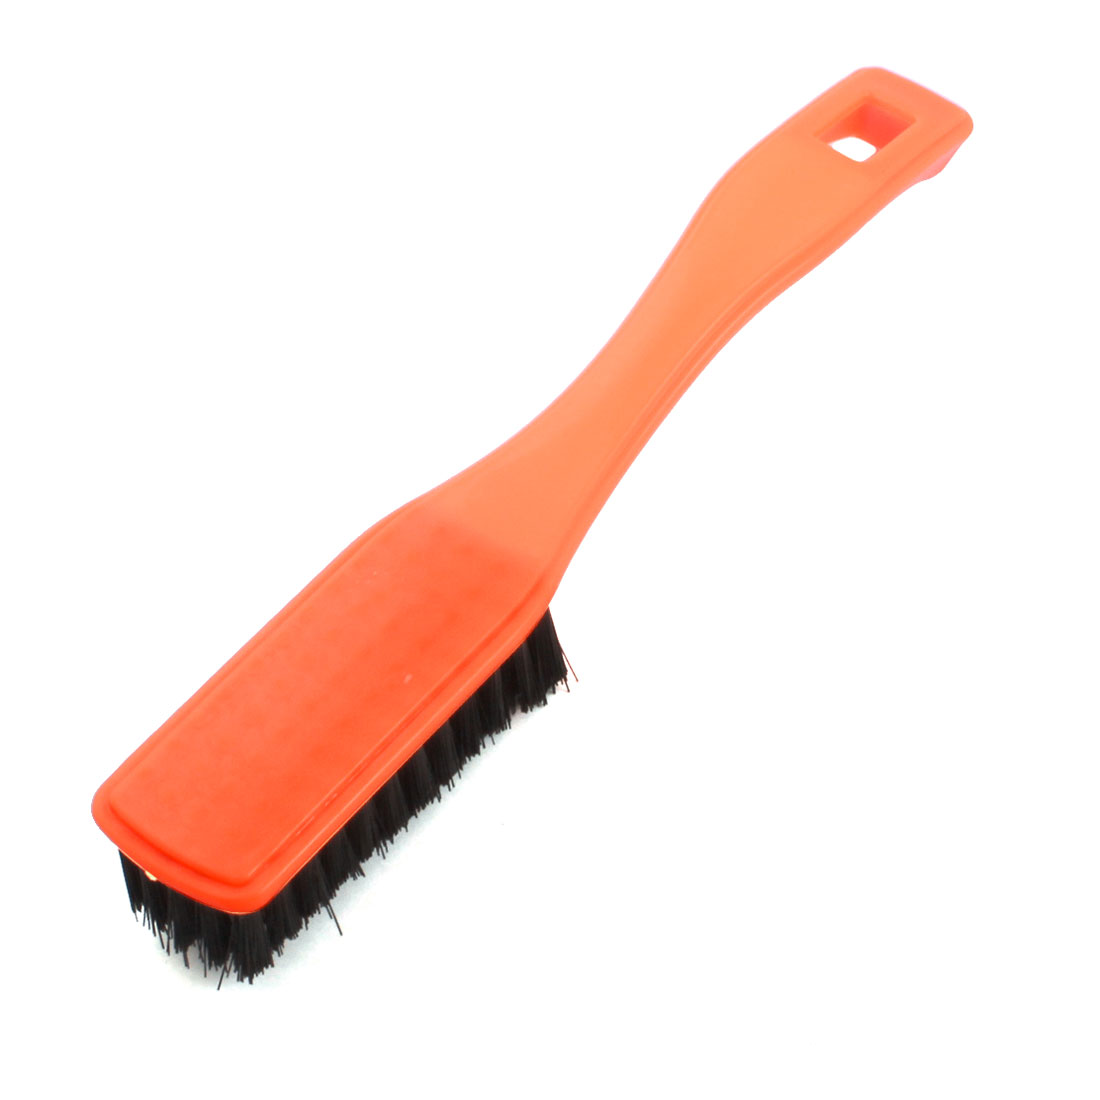 Household Orange Plastic Handle Clothes Shoes Washing Cleaning Scrubbing Brush